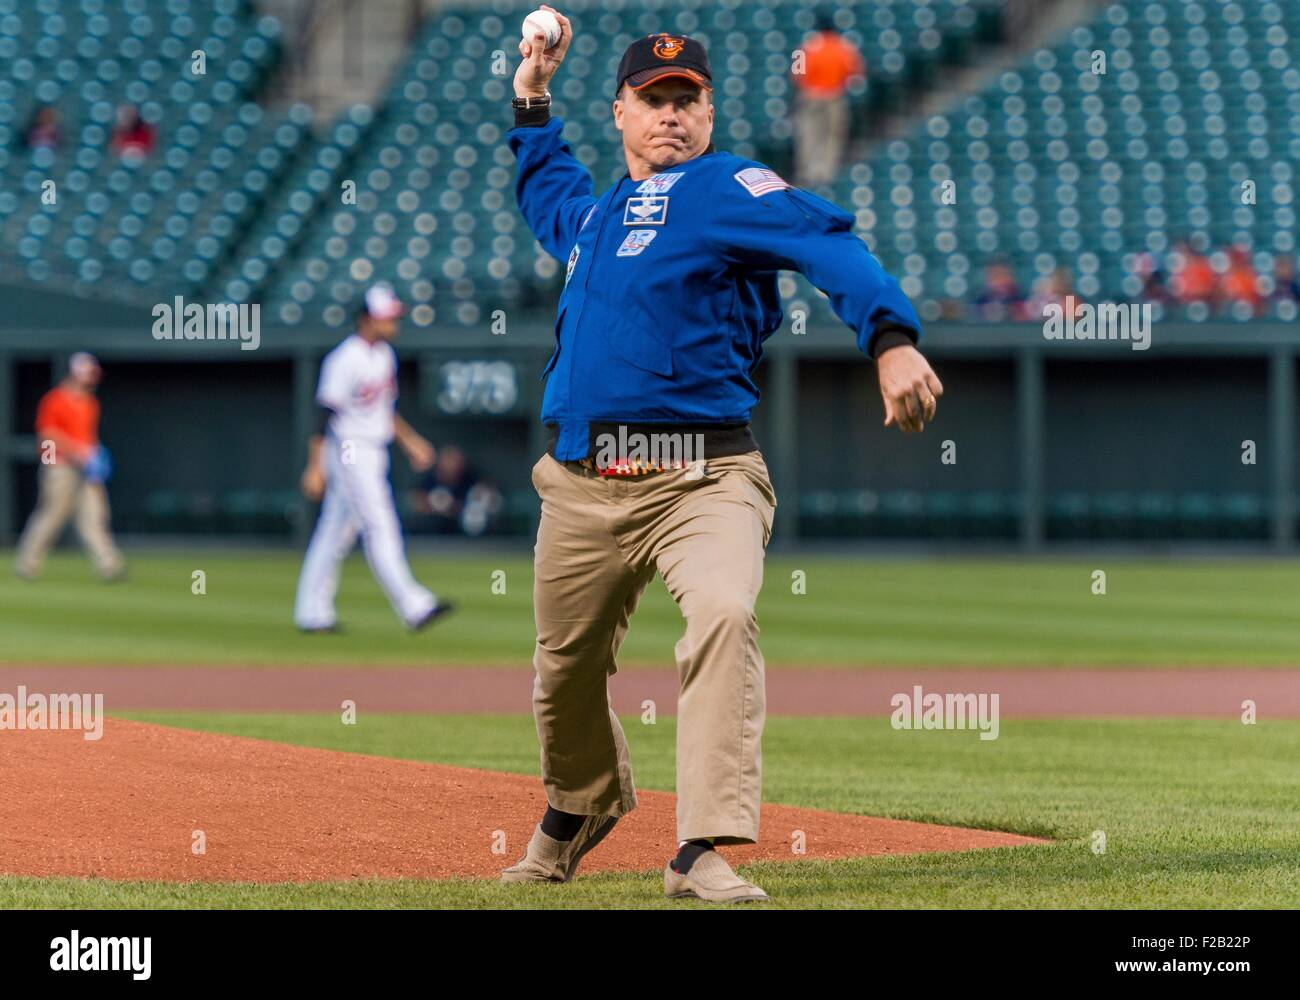 NASA astronaut and Maryland native, Terry Virts throws out the ceremonial first pitch before the Boston Red Sox - Stock Image